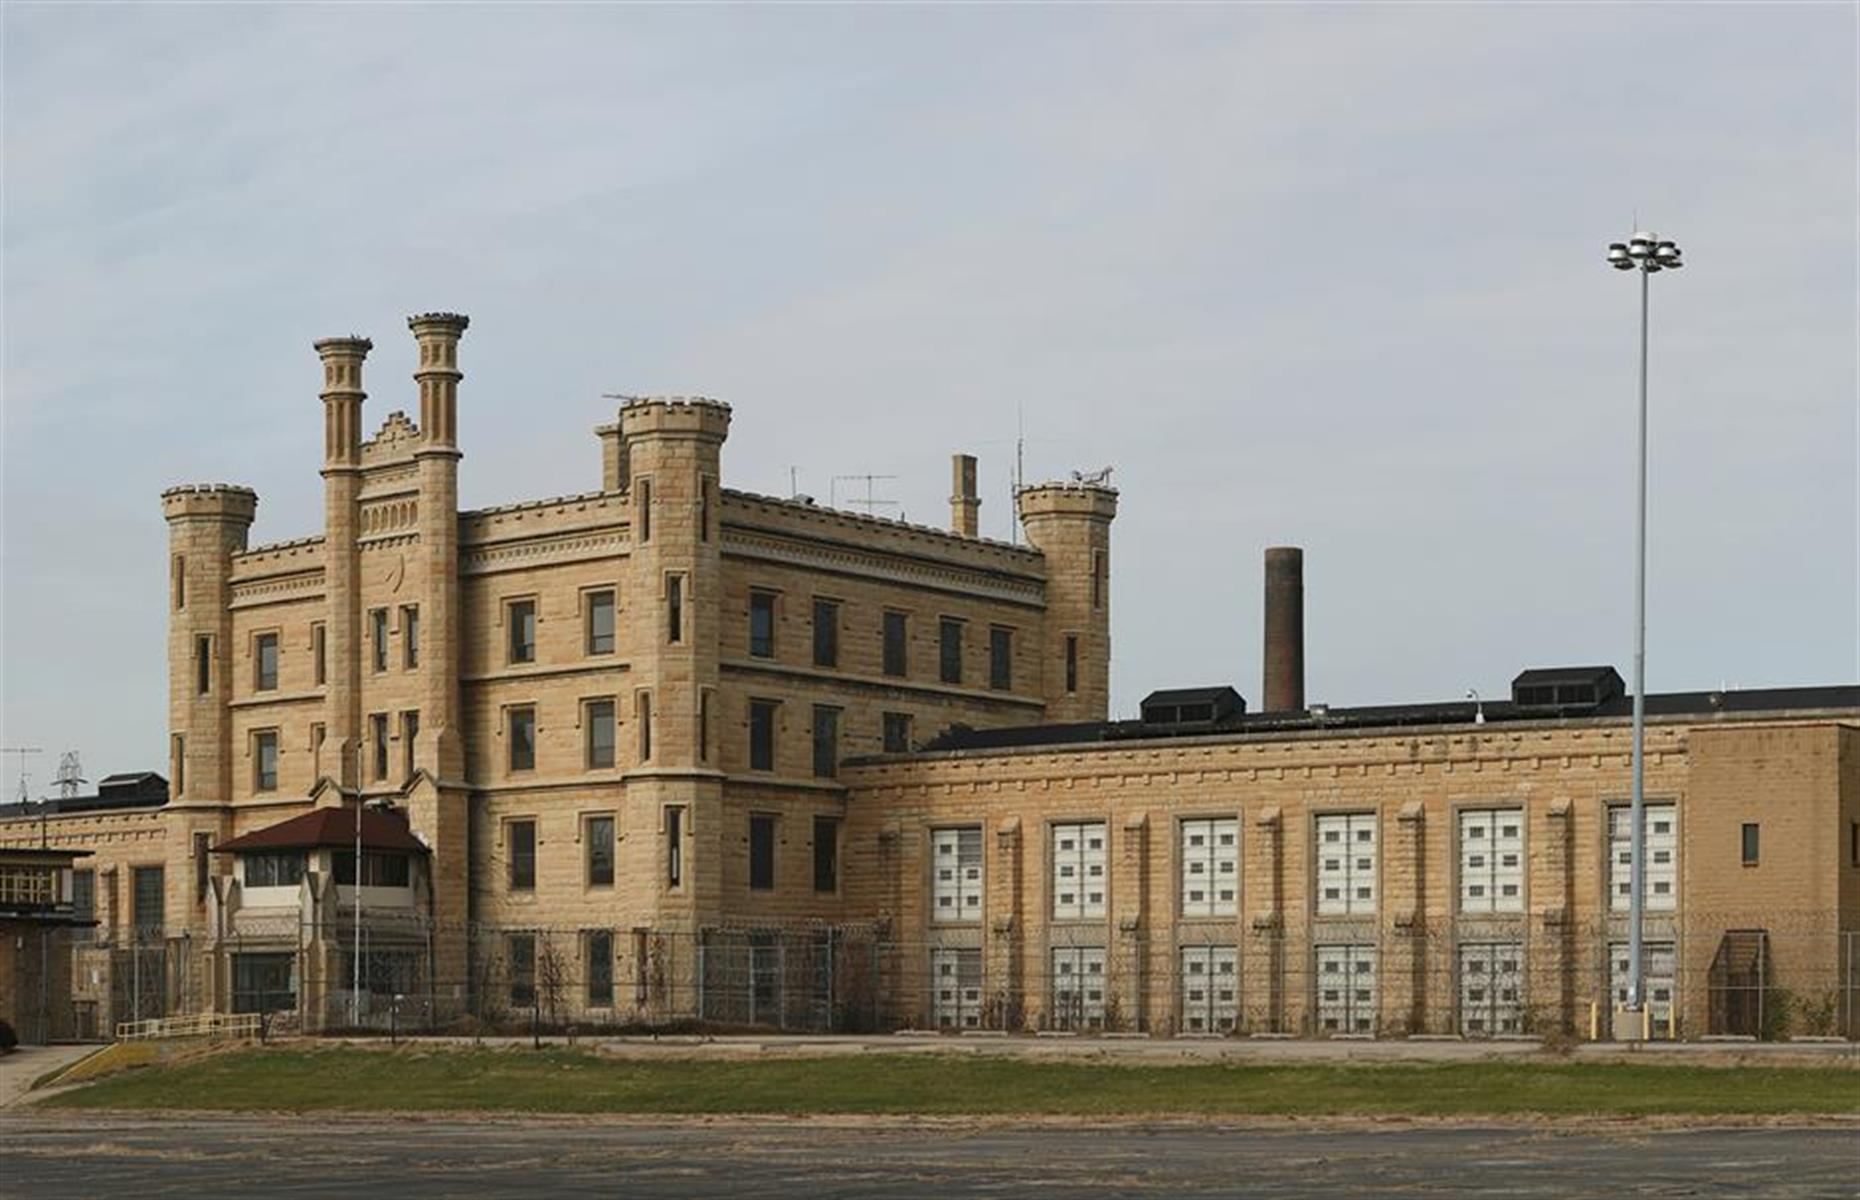 Slide 26 of 101: This castle-like prison in northeastern Illinois was first opened in the late 1850s. The building was as formidable on the inside as it was on the out and, having reached capacity, the prison offered cramped and unsanitary conditions for its inmates.